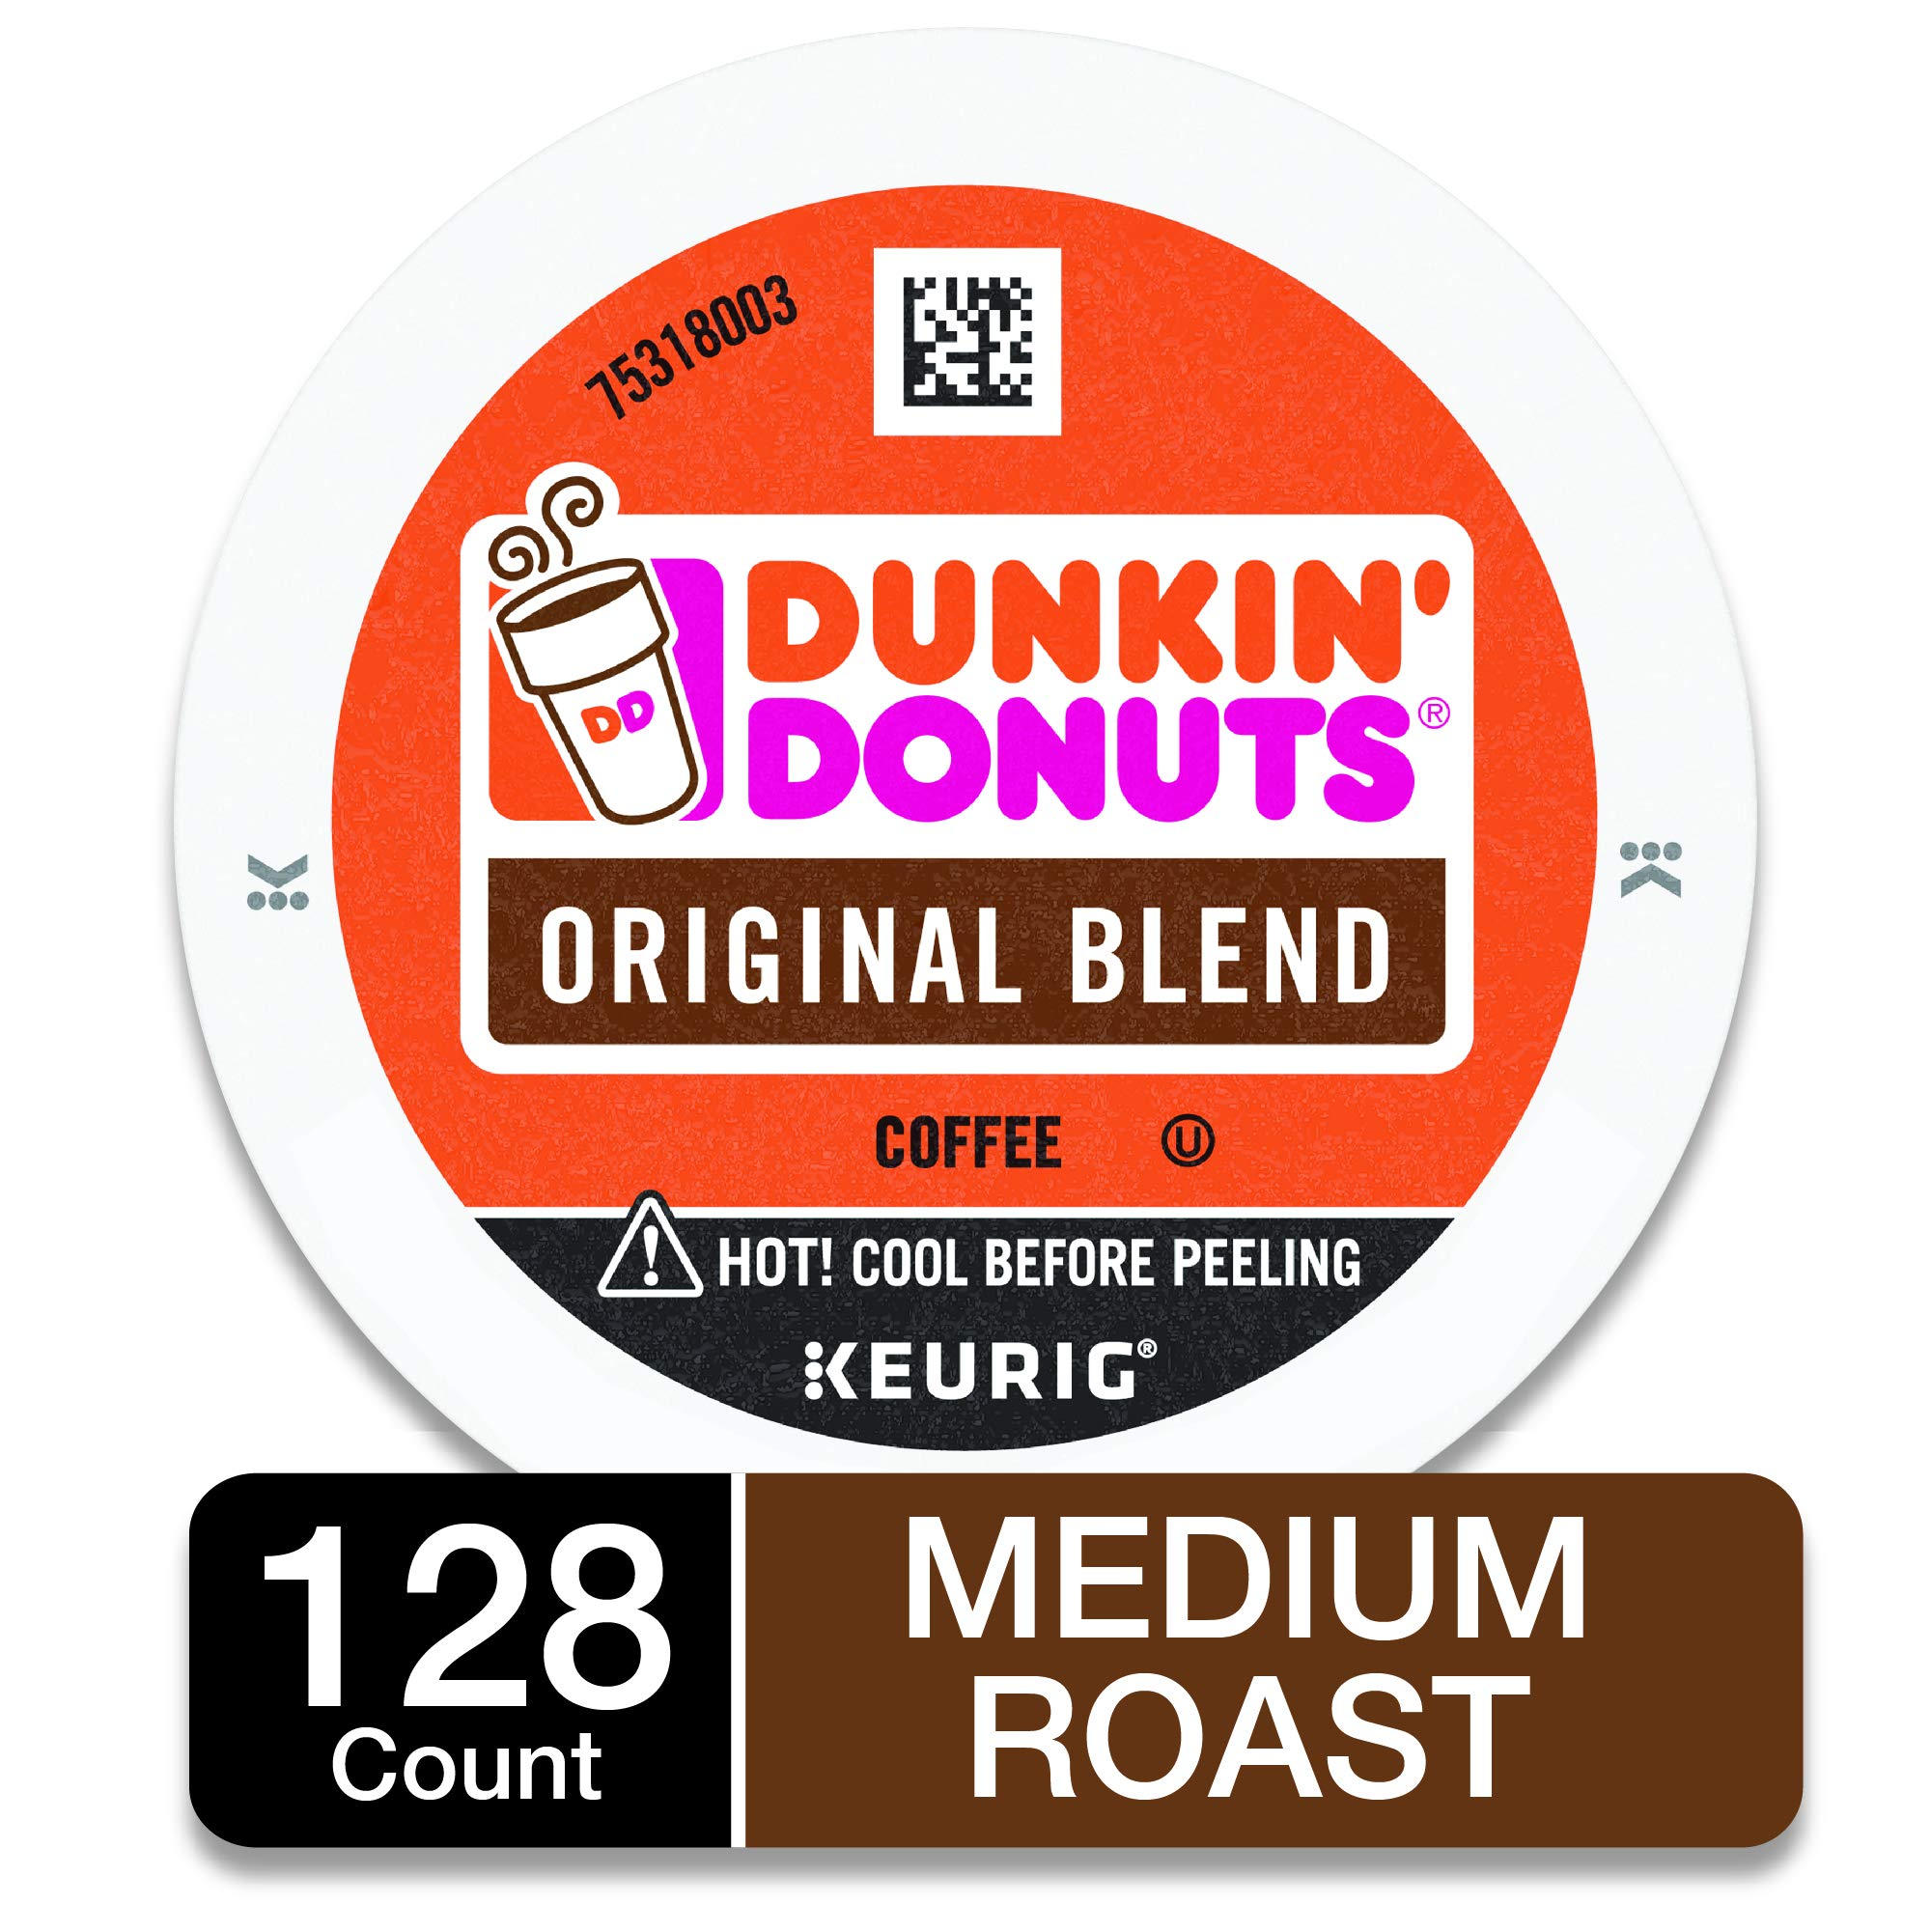 Dunkin' Donuts Original Blend Medium Roast Coffee, 128 K Cups for Keurig Makers by Dunkin' Donuts